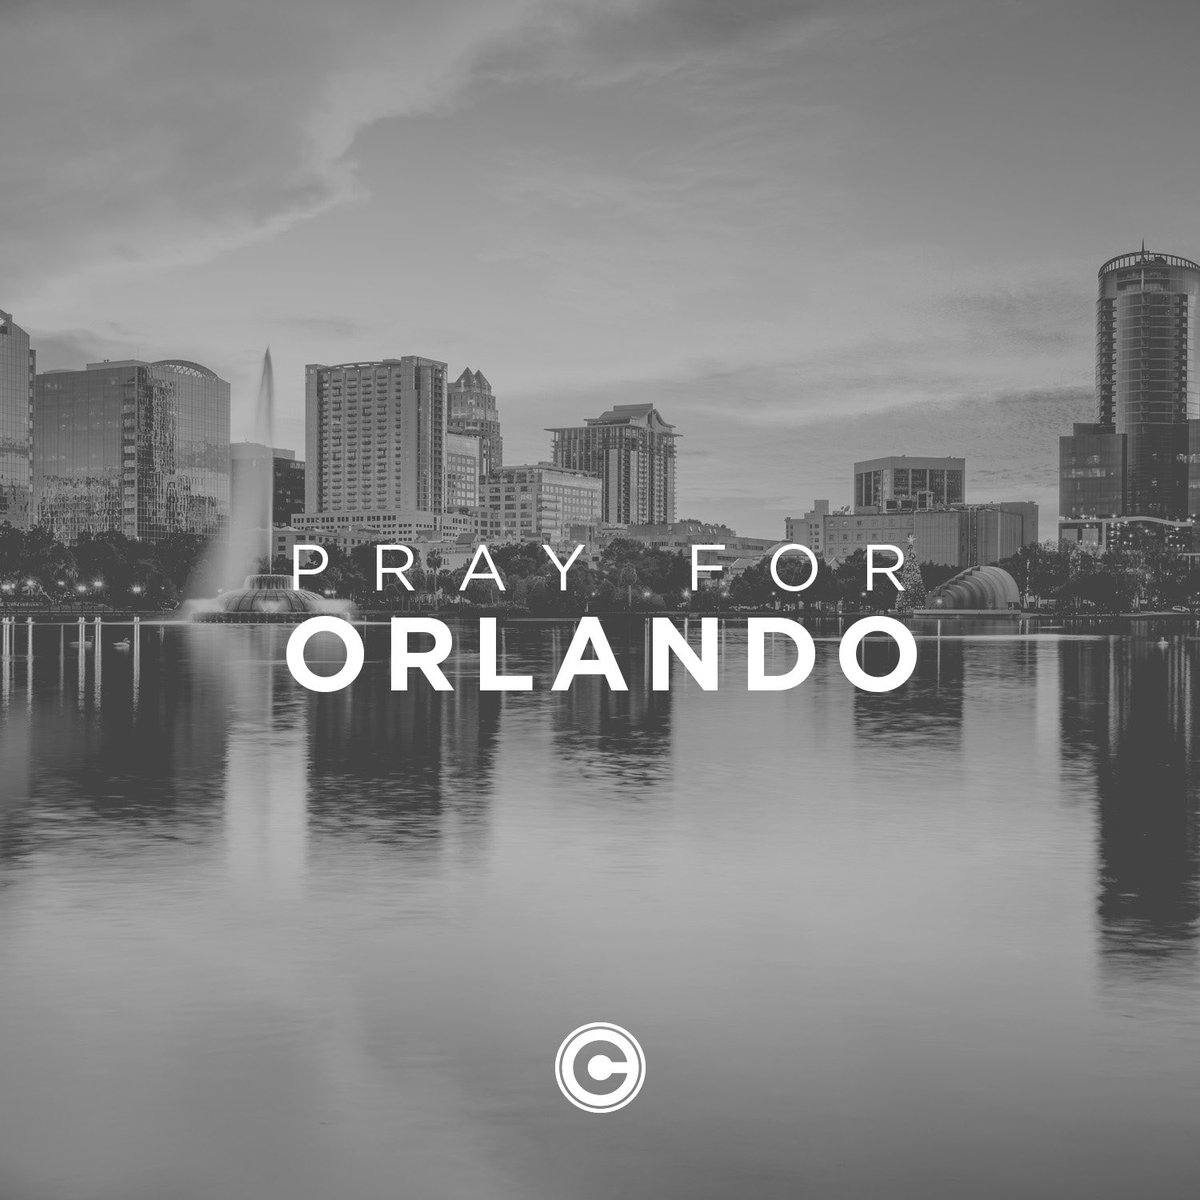 Please join us in praying for all who were affected by the shooting in Orlando. #PrayForOrlando https://t.co/H4rHhQngJ1